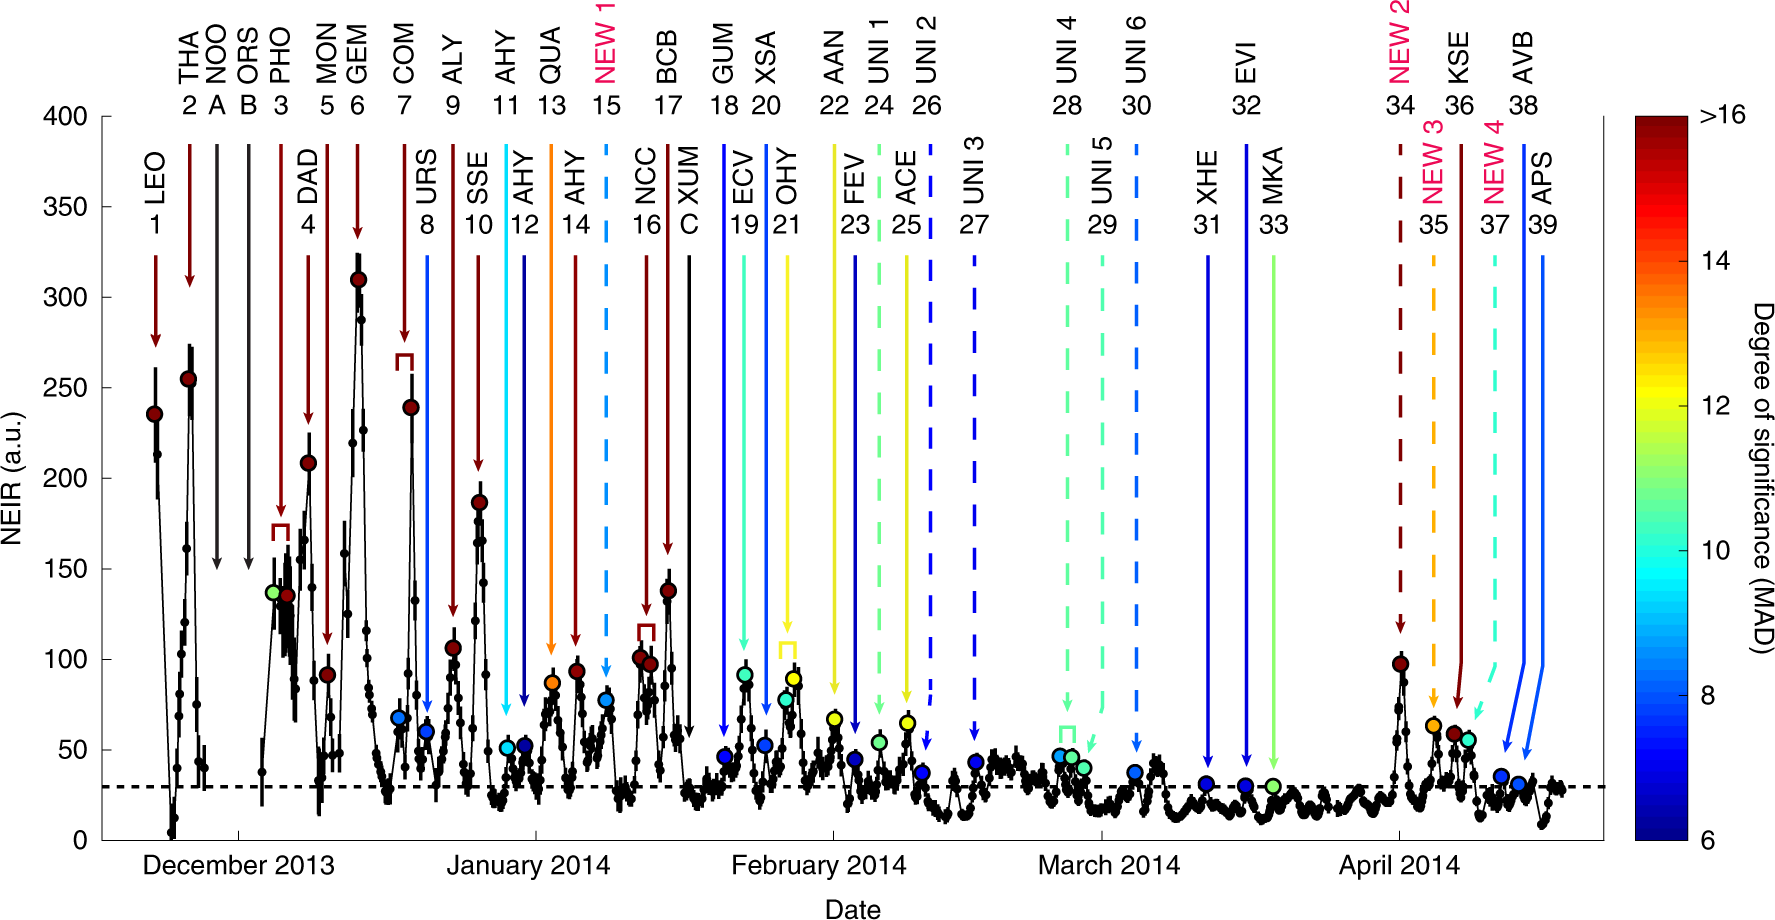 Lunar soil hydration constrained by exospheric water liberated by mete